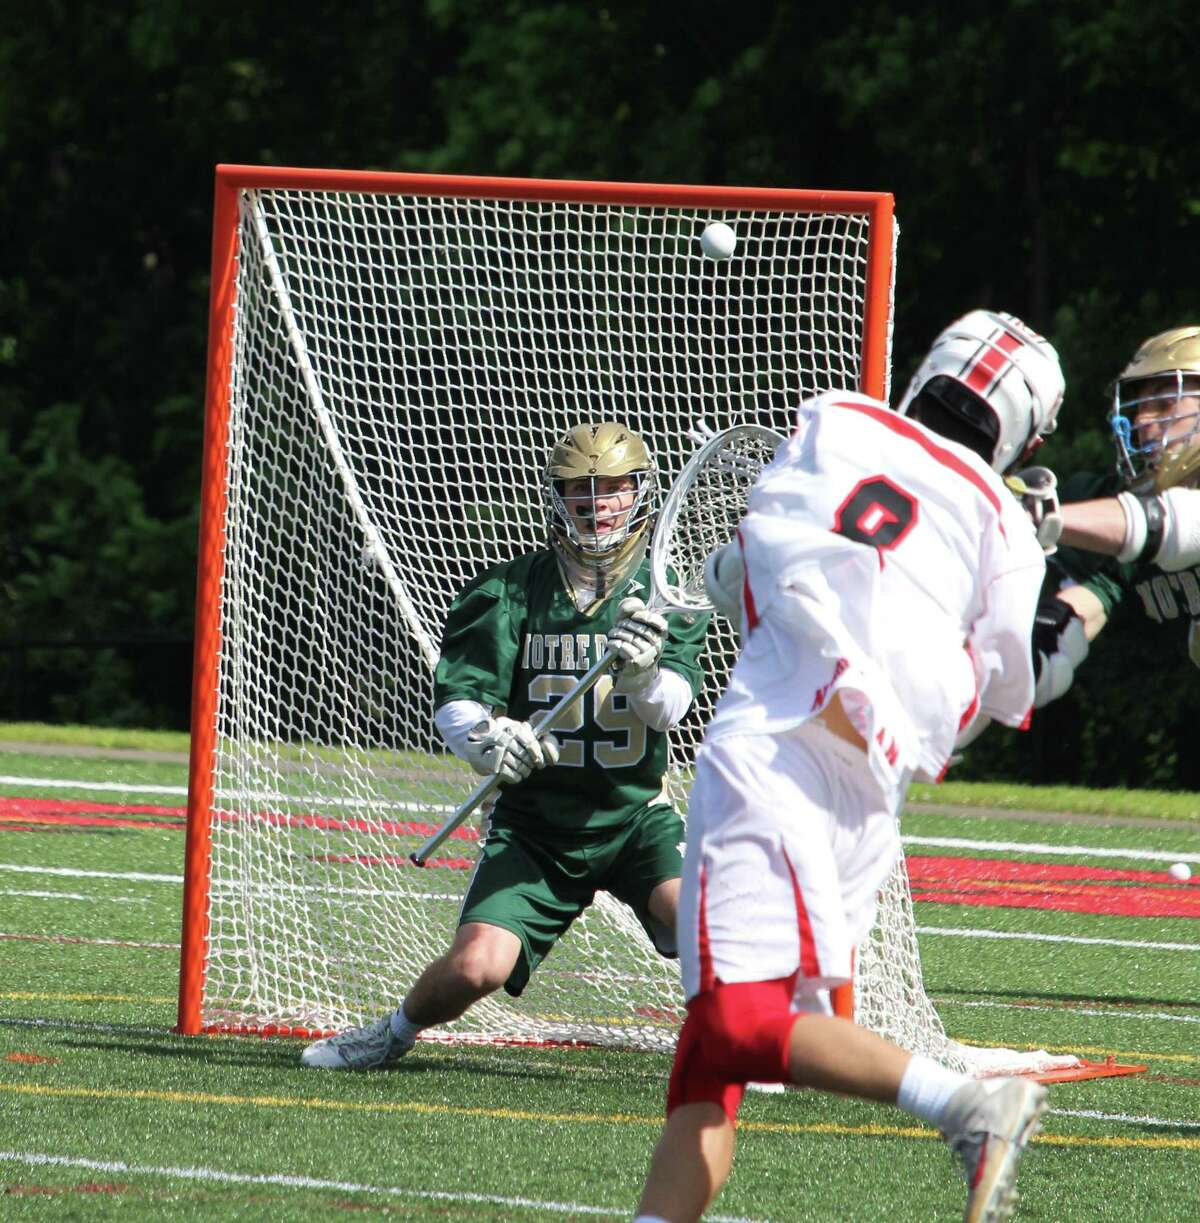 New Canaan's Owen Shin fires a shot that Notre Dame-West Haven goalie Gino Pagliaro saved during the Class M lacrosse quarterfinals between New Canaan and Notre Dame-West Haven on Saturday at New Canaan High School. New Canaan defeated Notre Dame-West Haven 16-3.